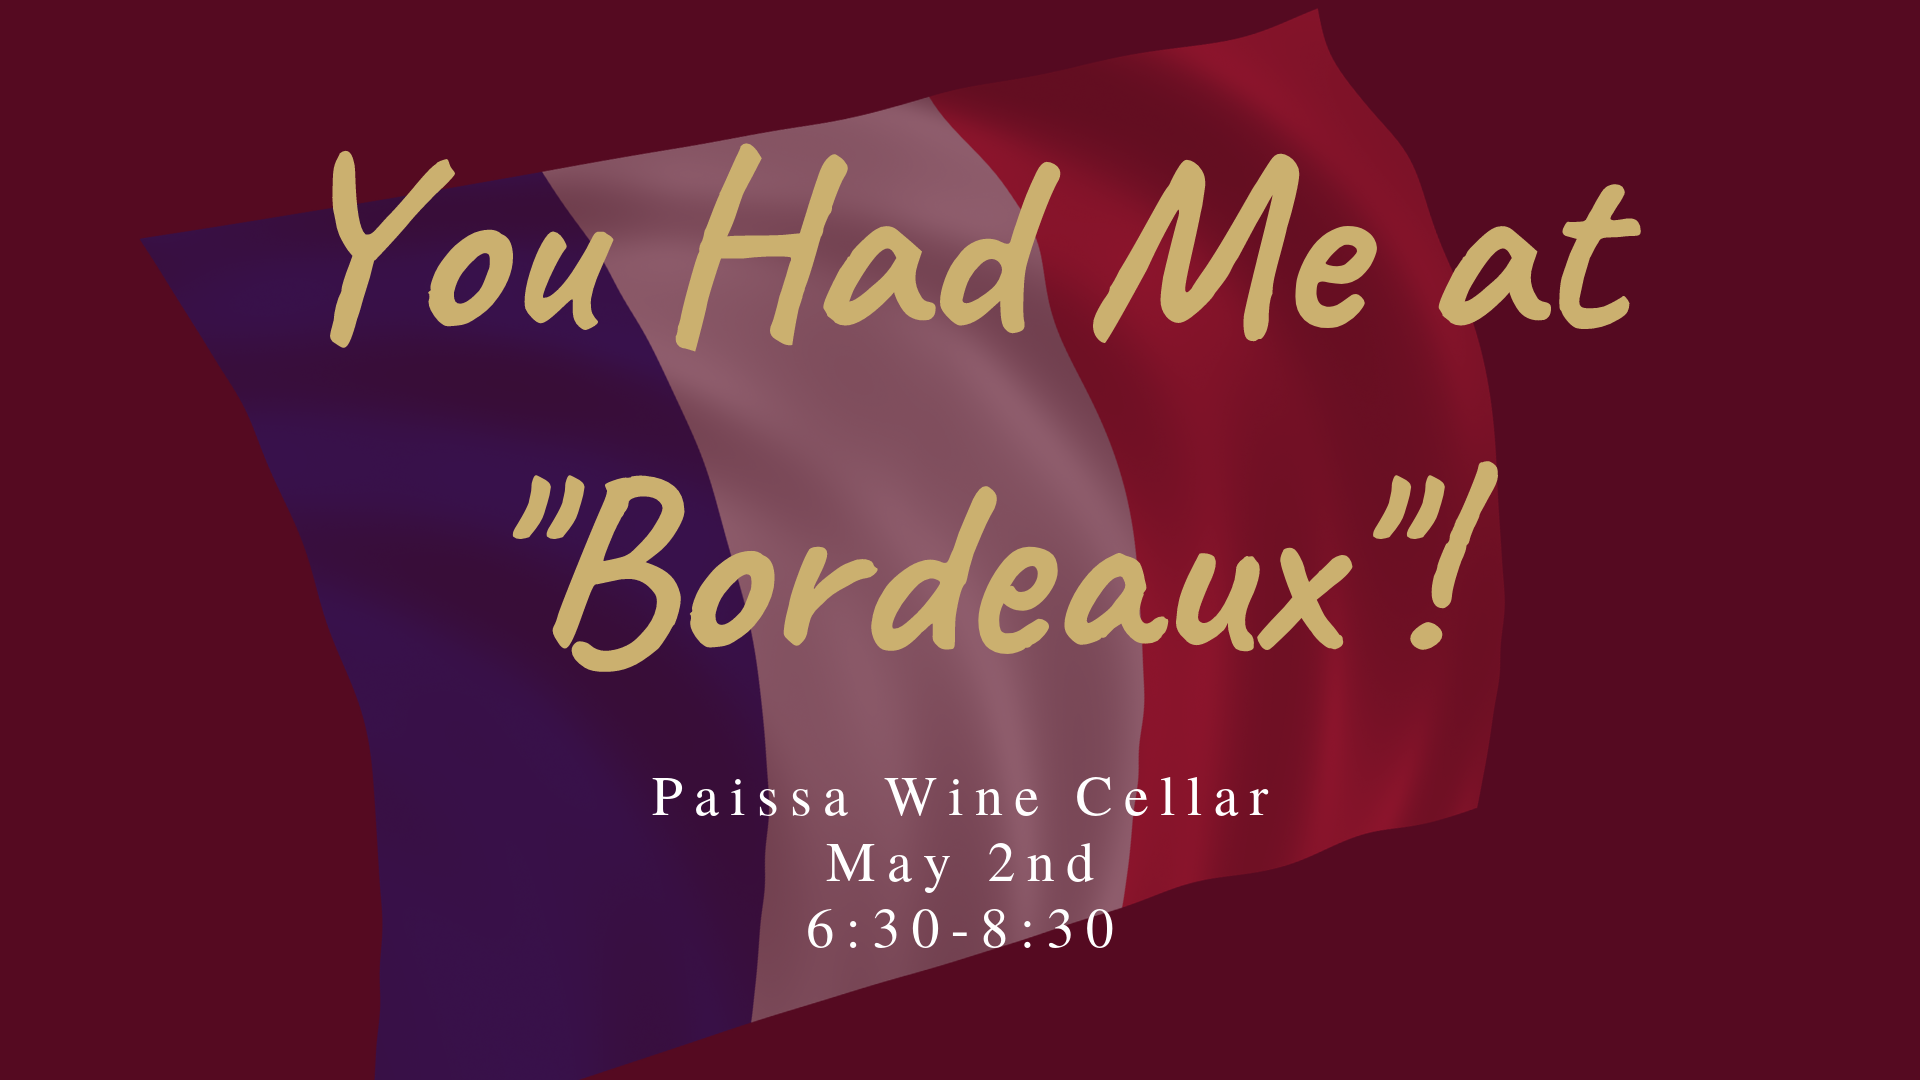 Wine Tasting: You had Me at Bordeaux